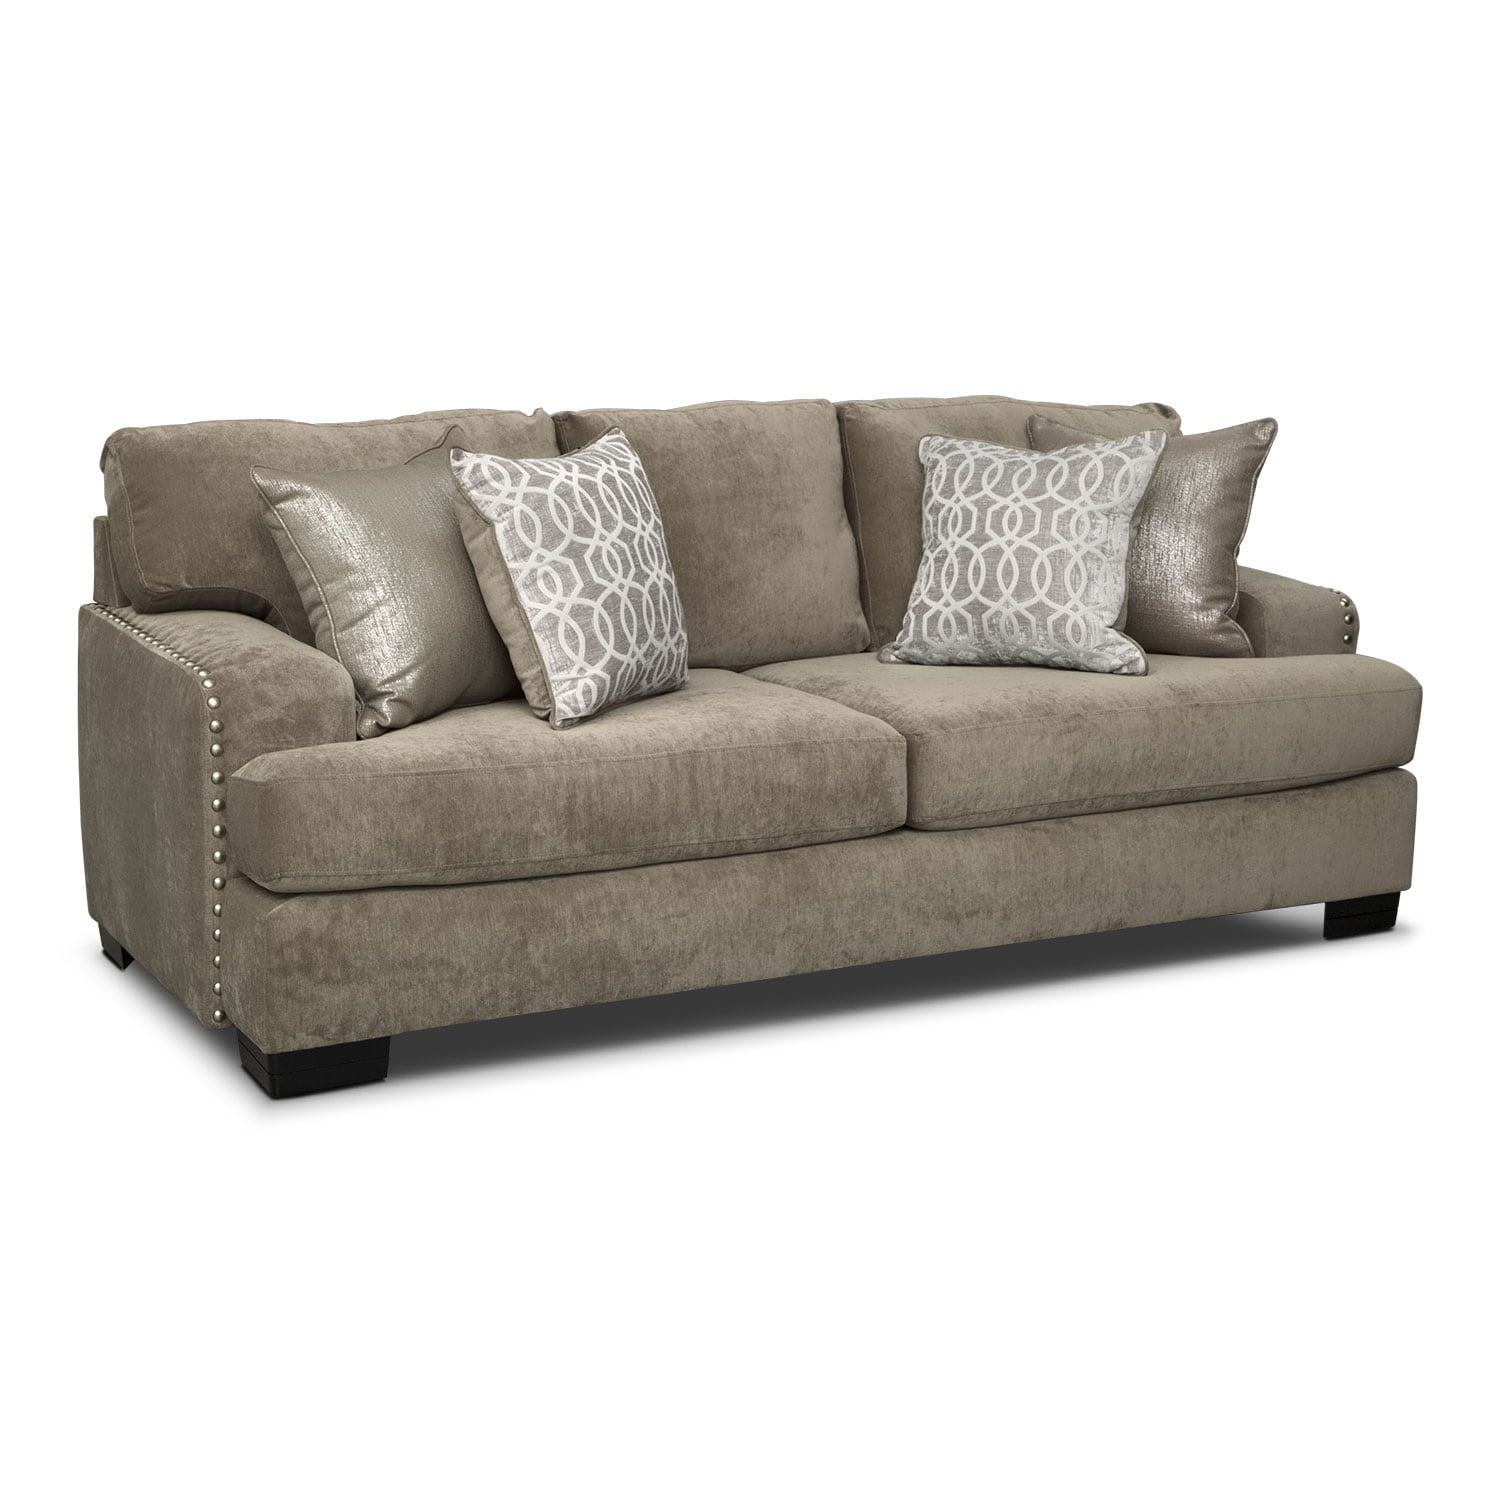 Sofa factory outlet cordelle sofa gray american signature for Sectional sofa factory outlet